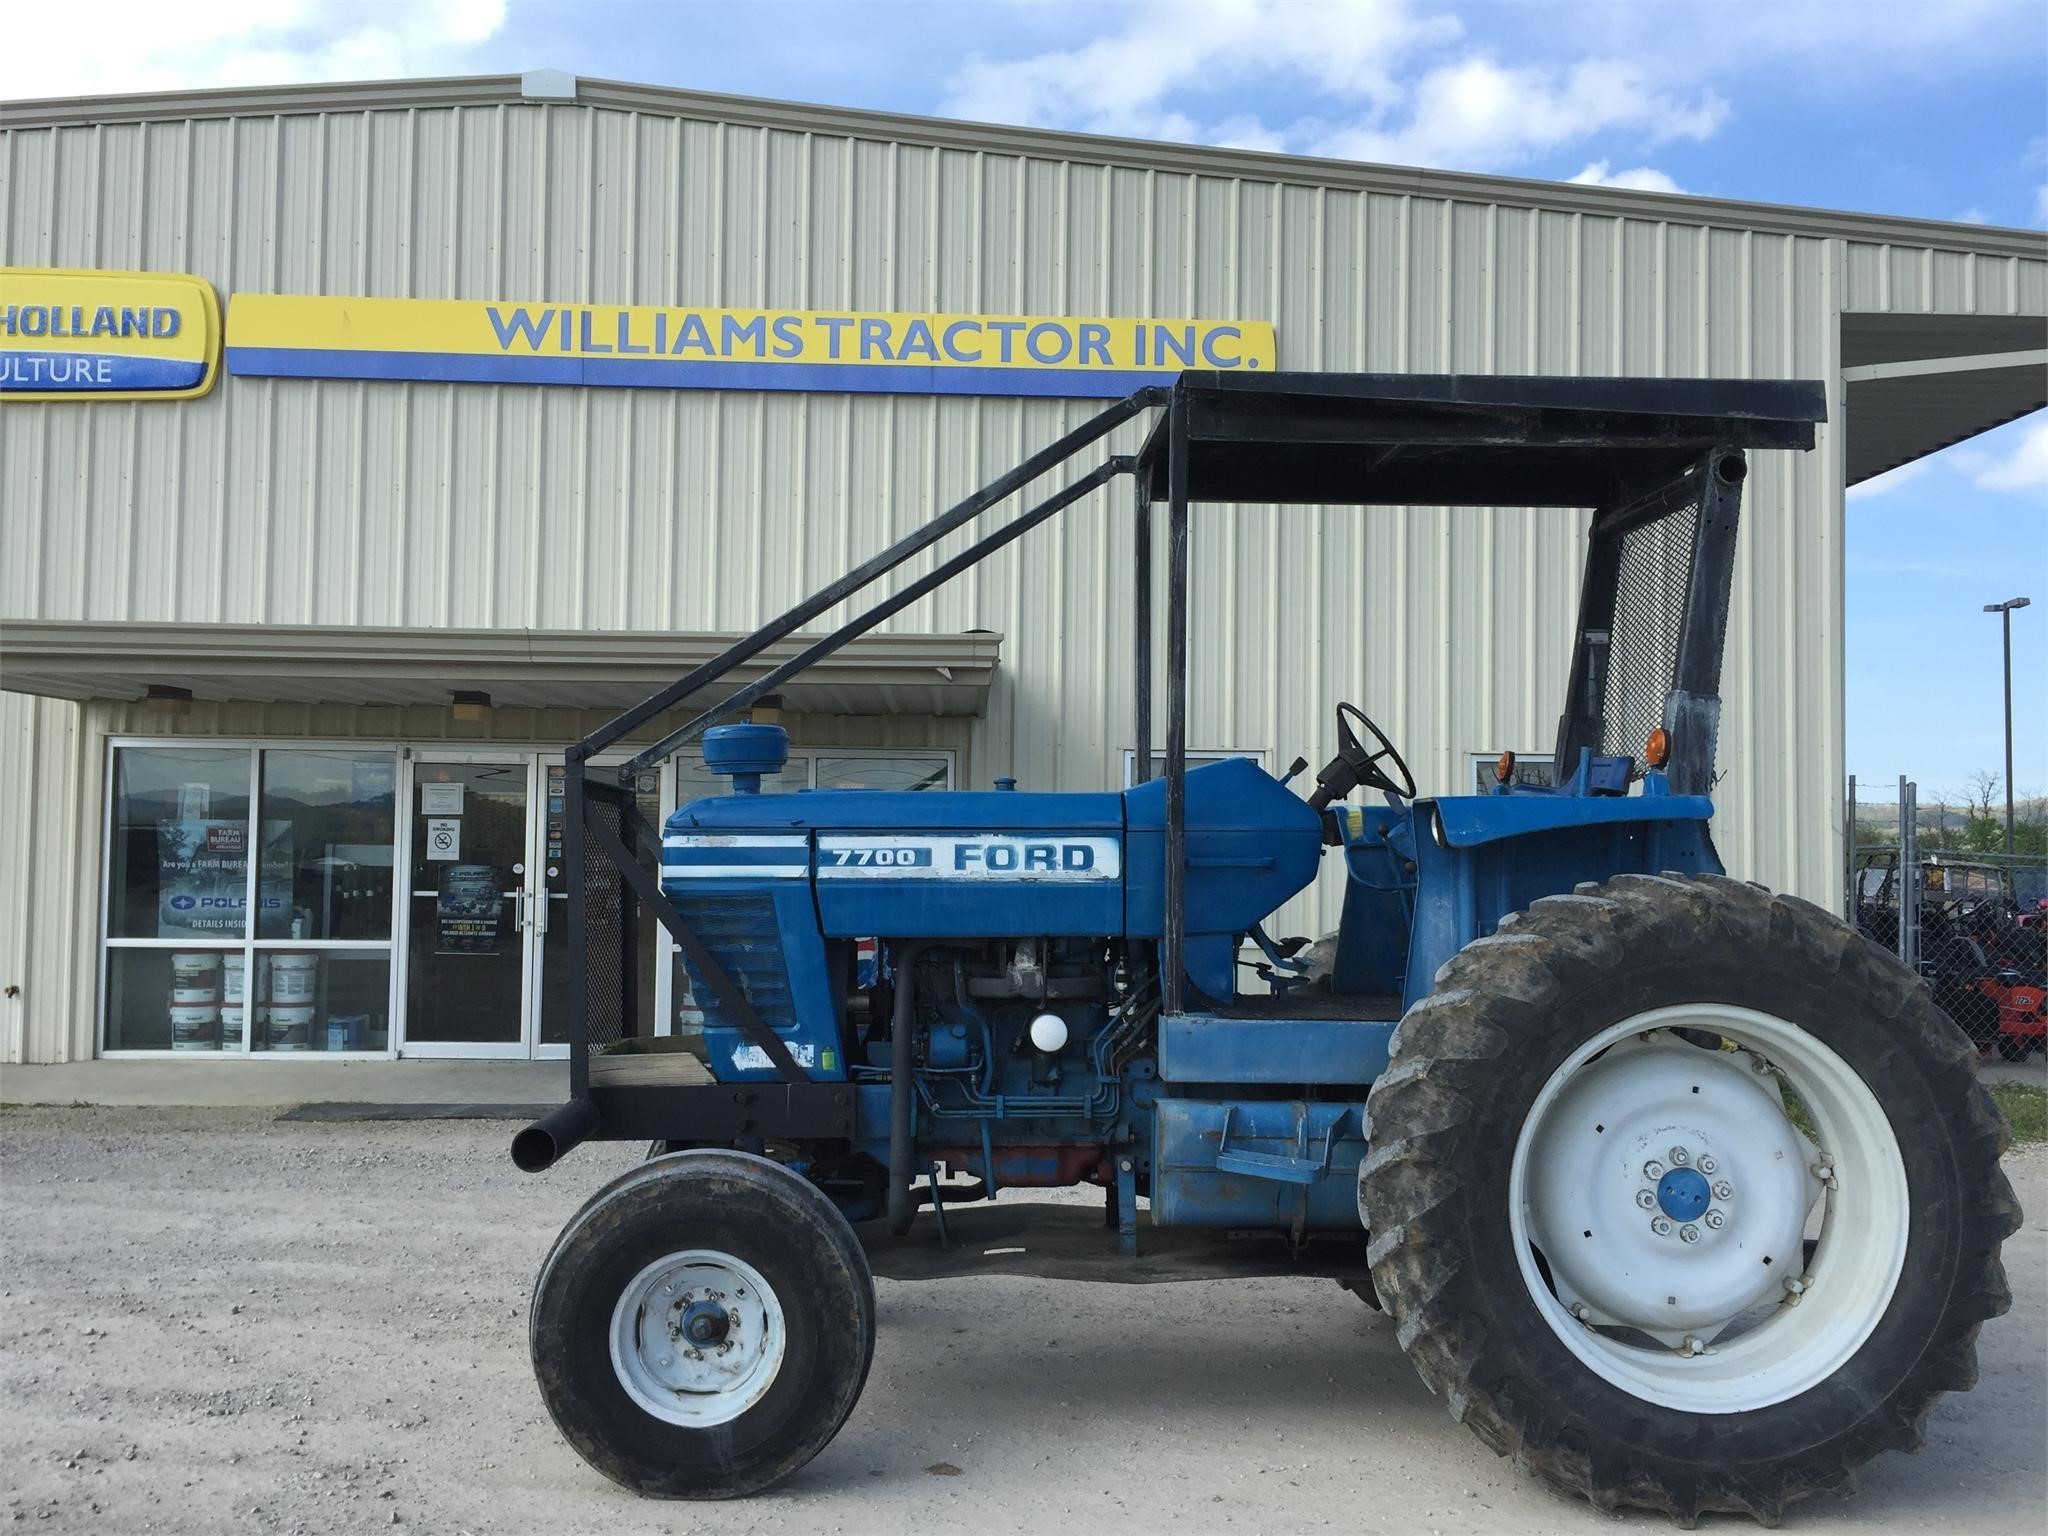 1977 Ford 7700 Tractor